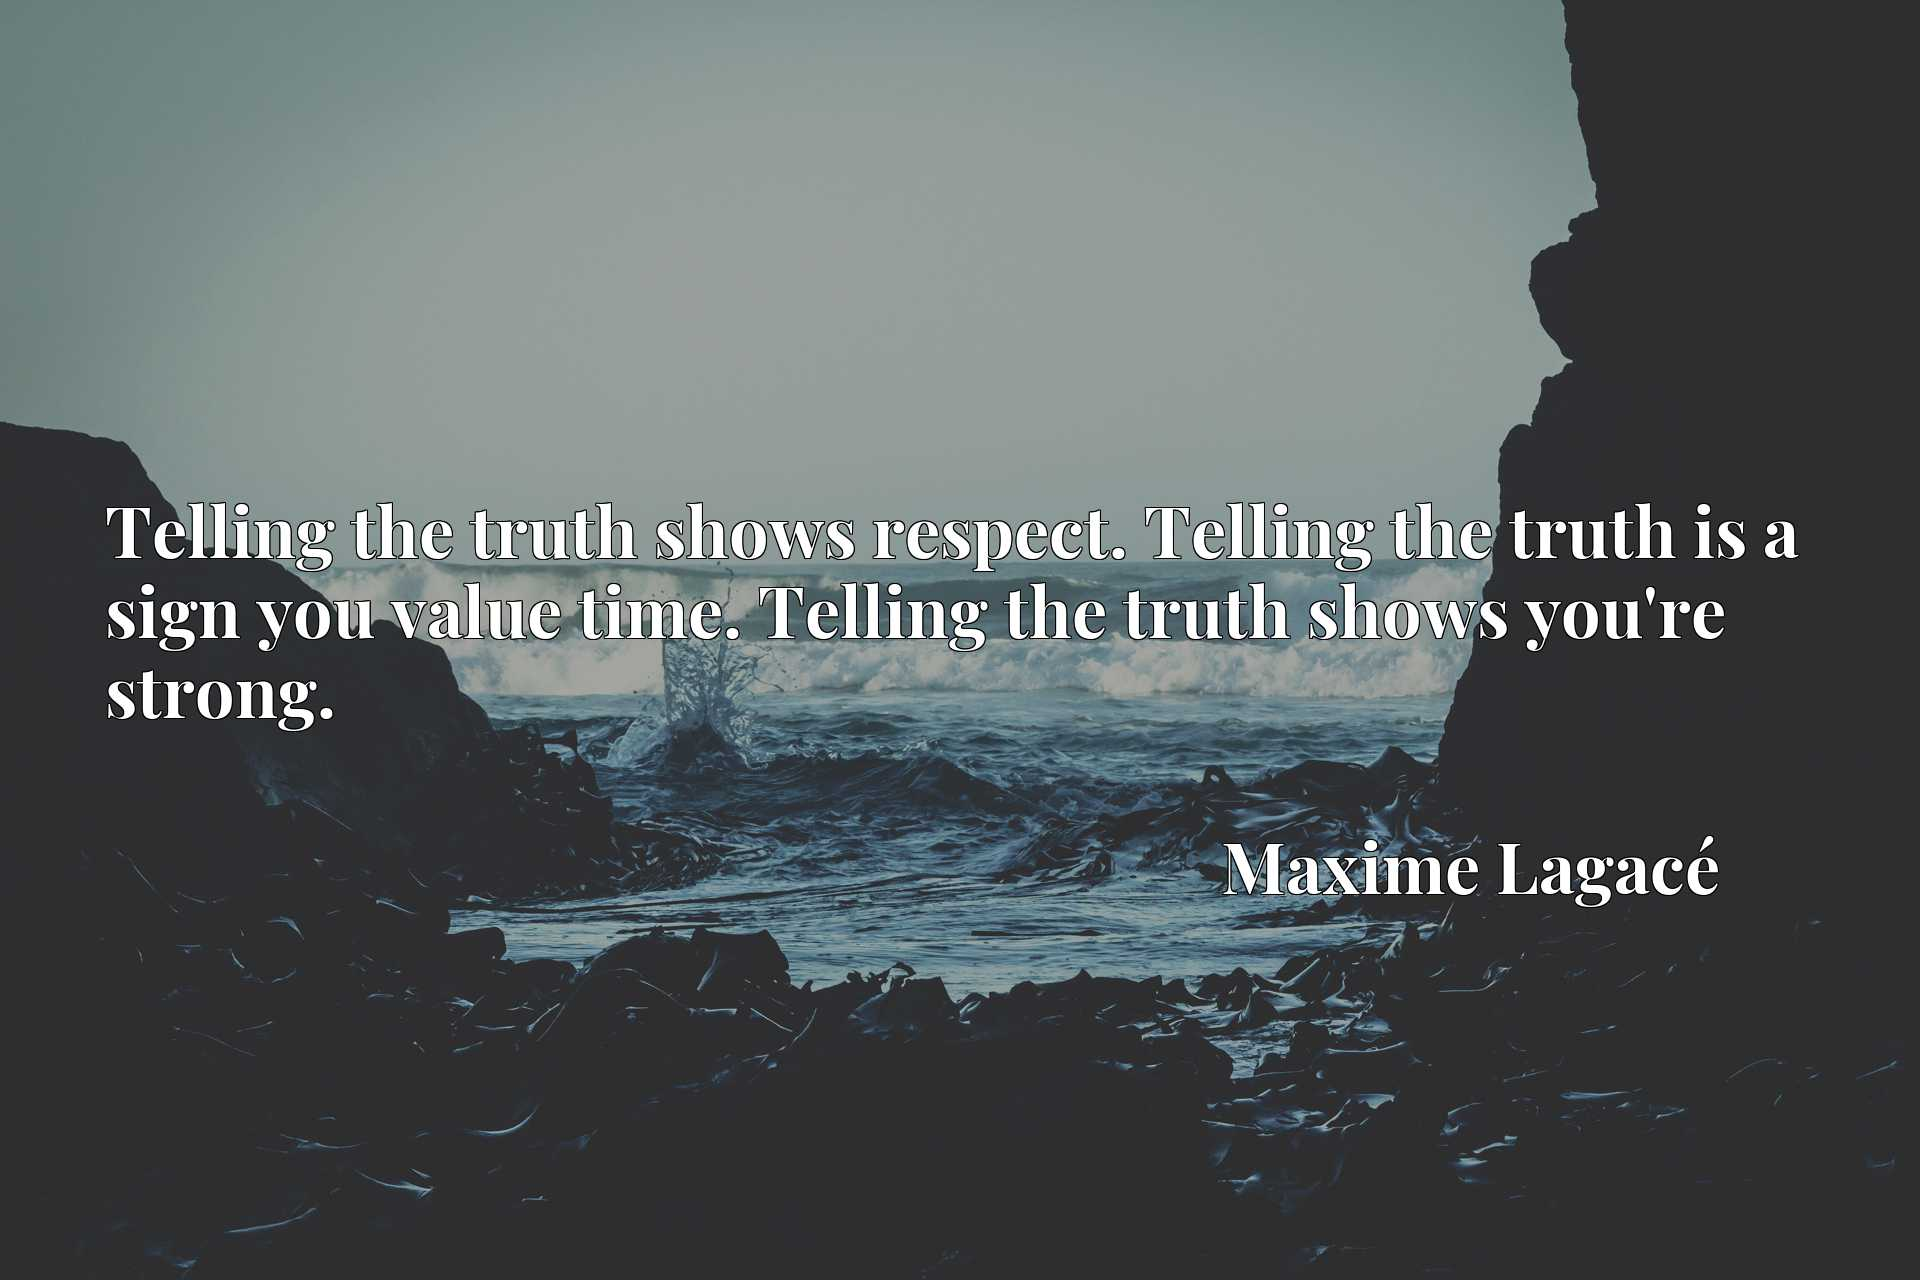 Telling the truth shows respect. Telling the truth is a sign you value time. Telling the truth shows you're strong.